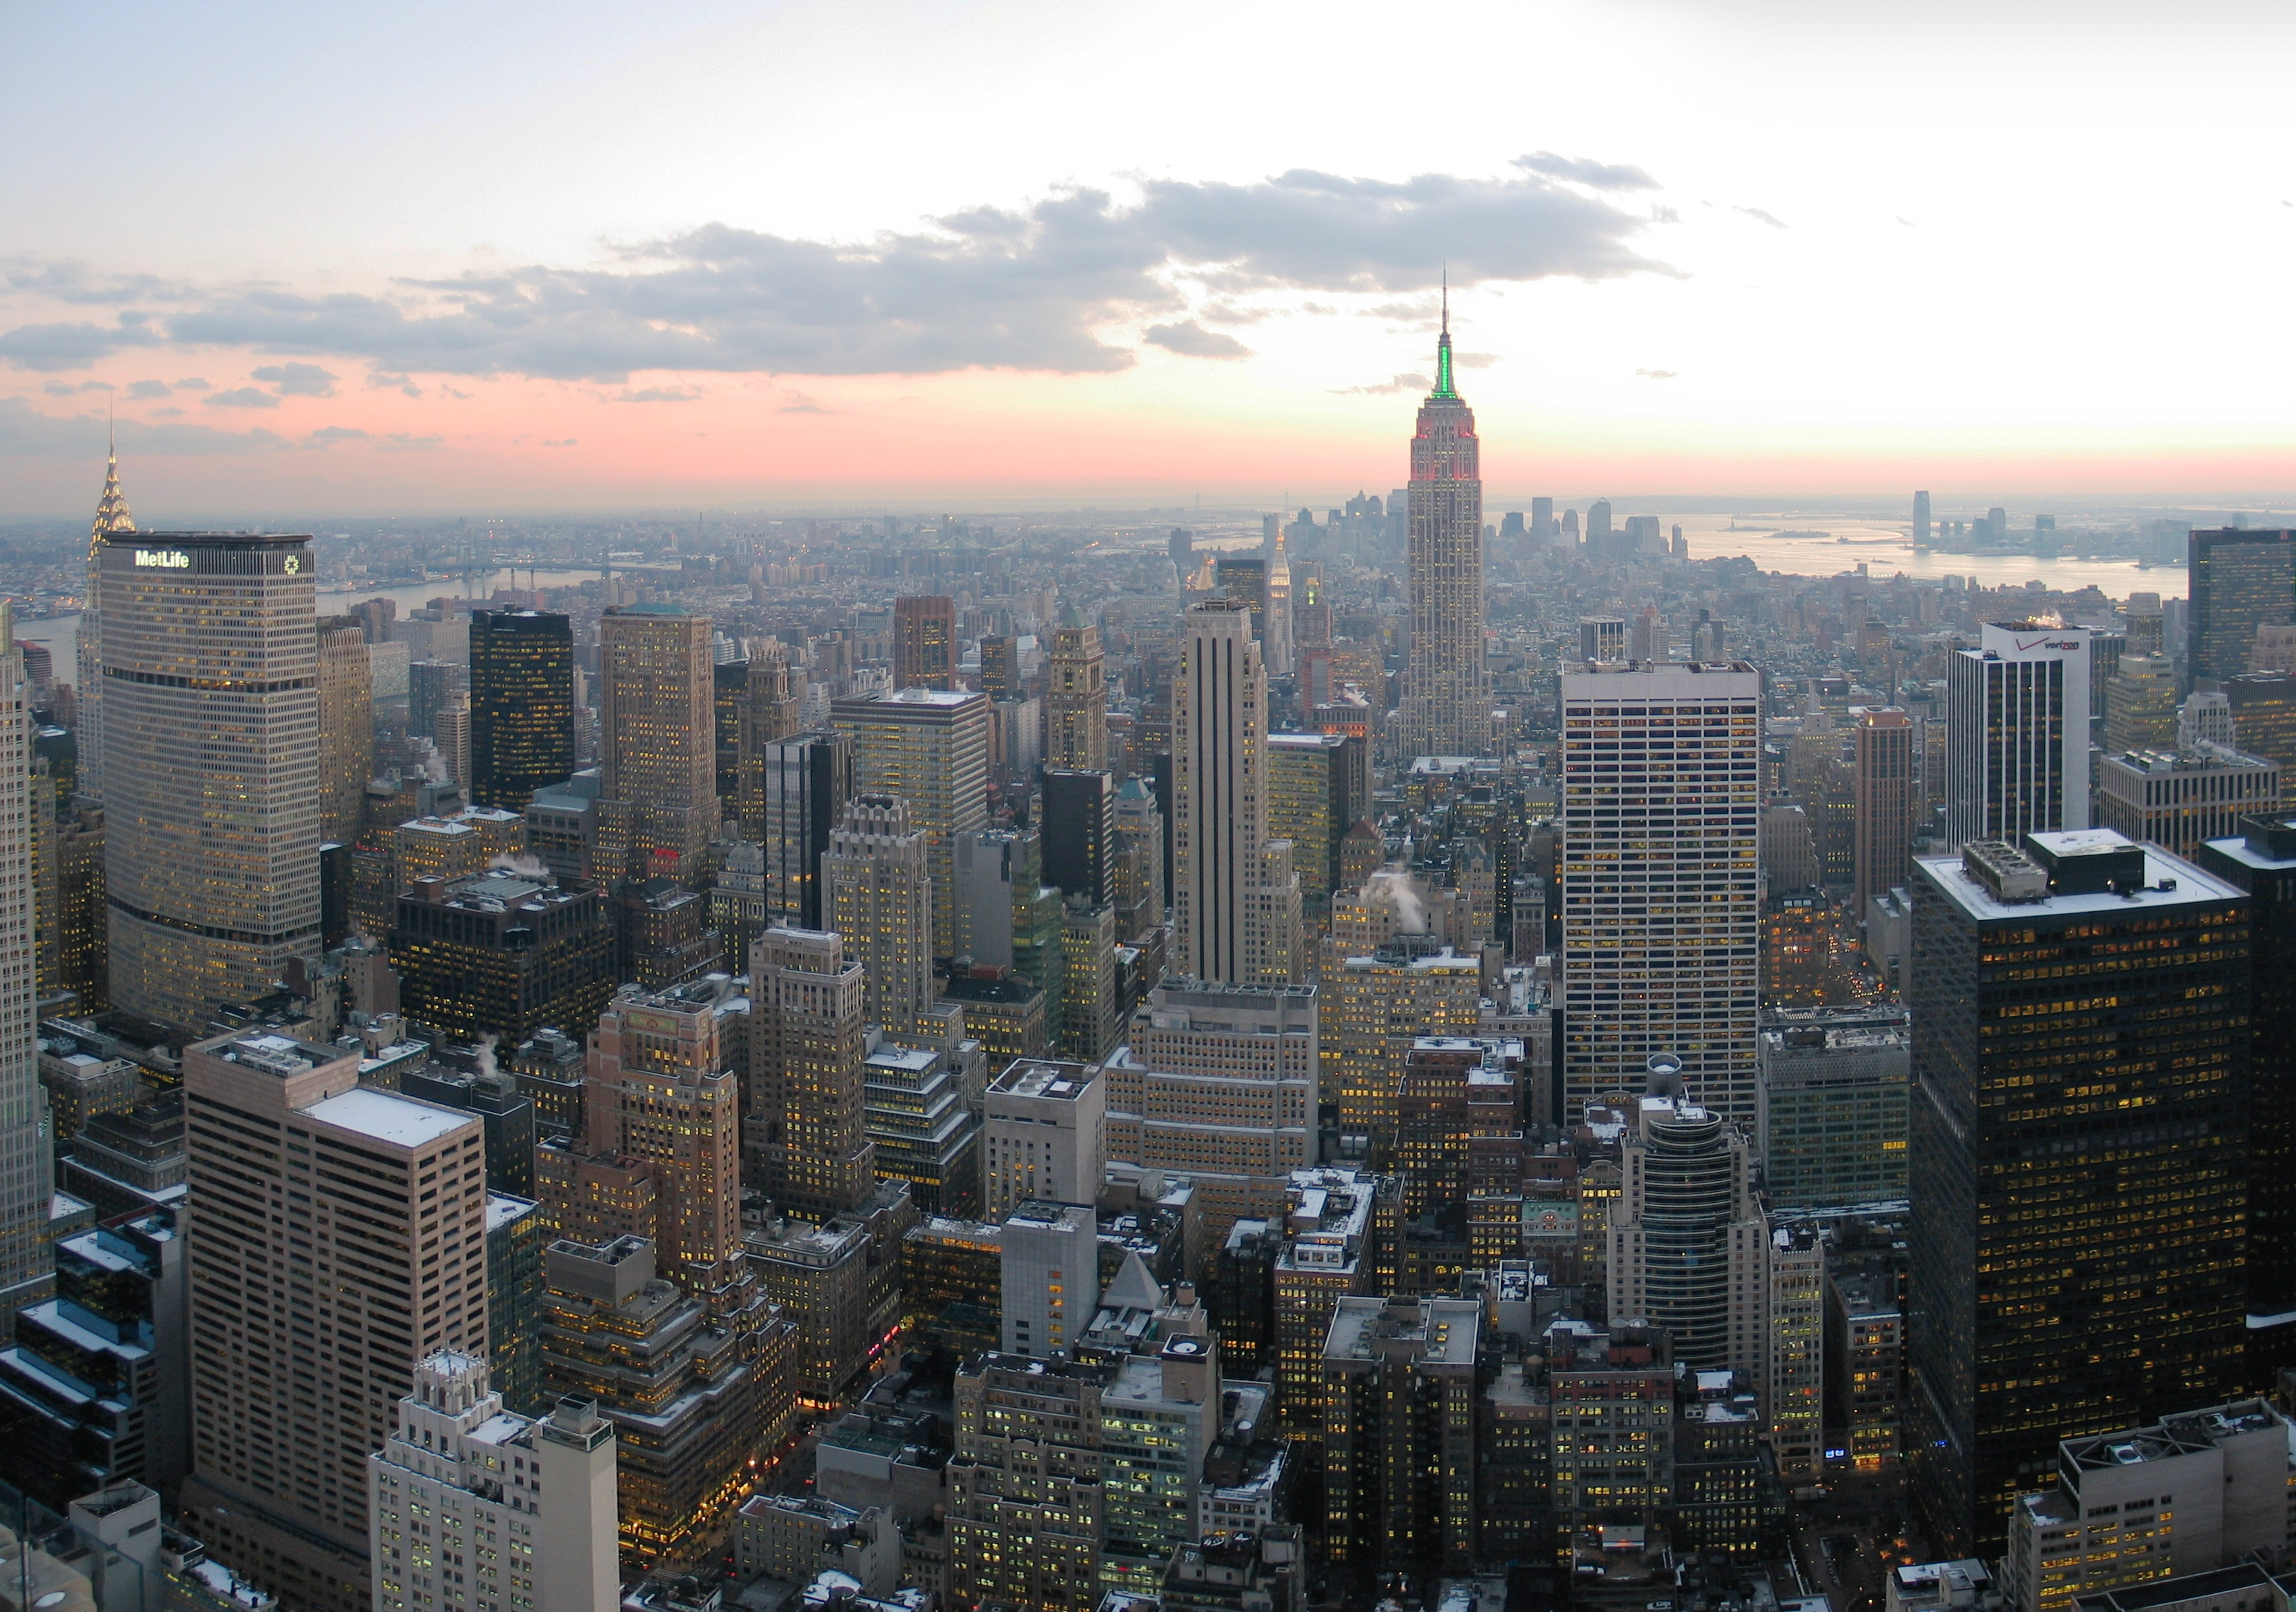 NYC_wideangle_south_from_Top_of_the_Rock